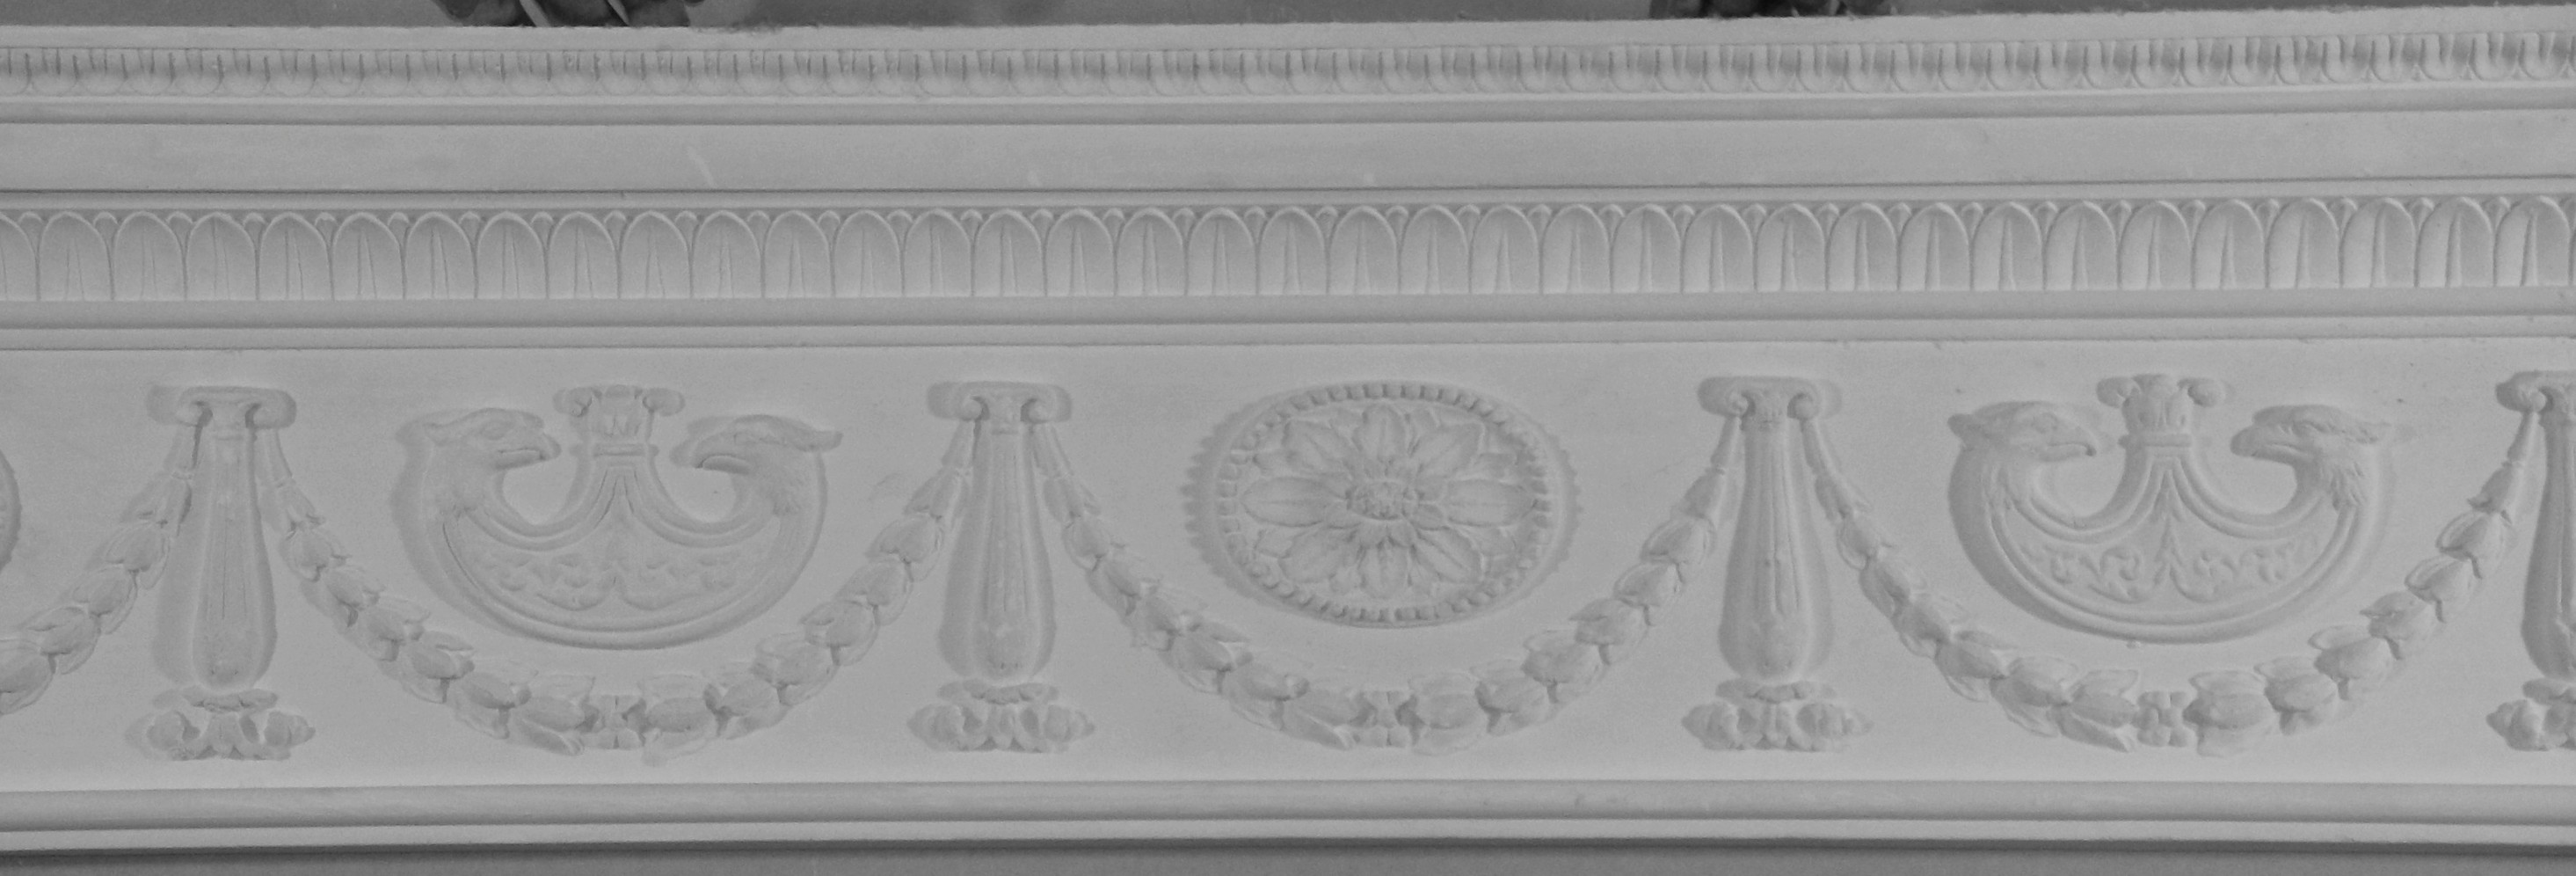 Regency Mouldings (1812-1820) & Other Cornices